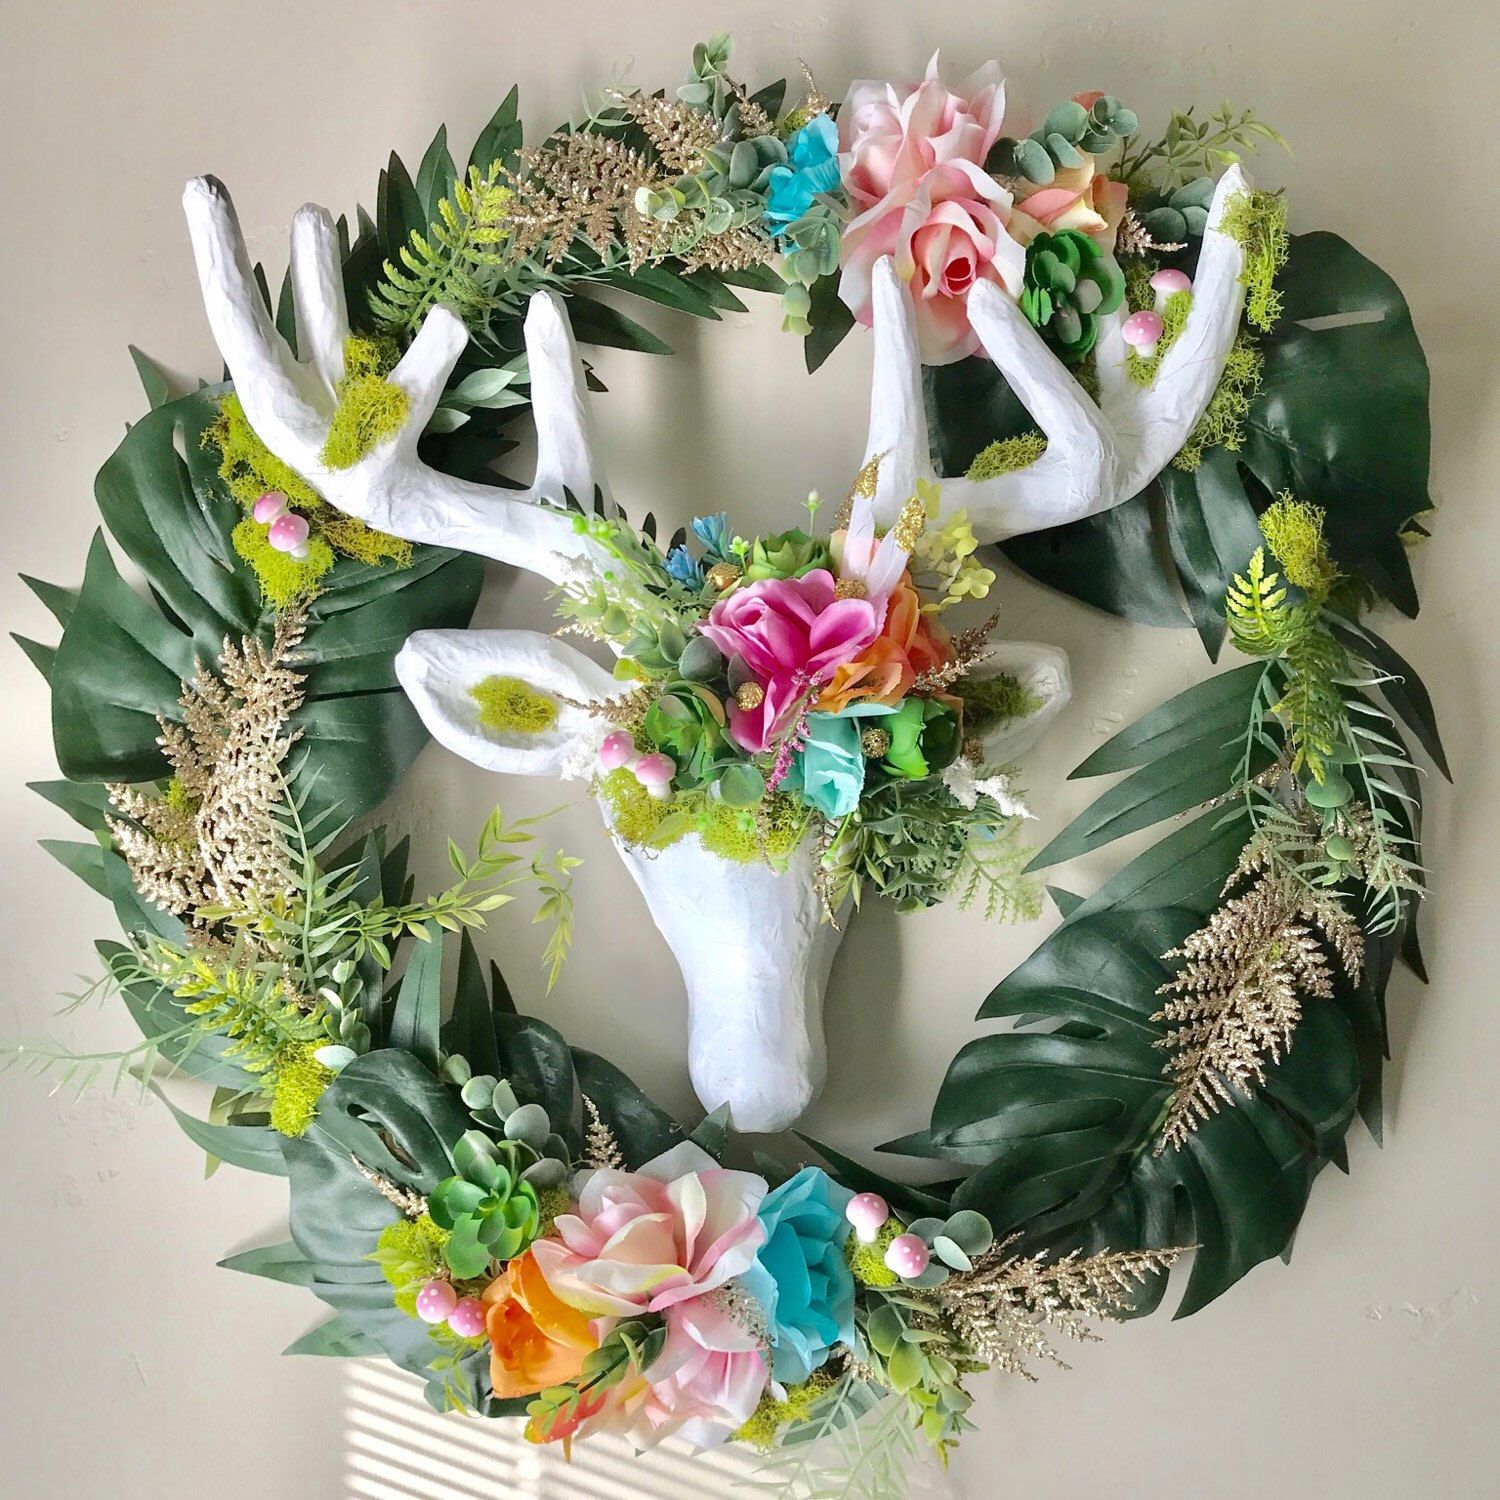 Boho Deer Wreath In stock while it lasts Nice for a birthday